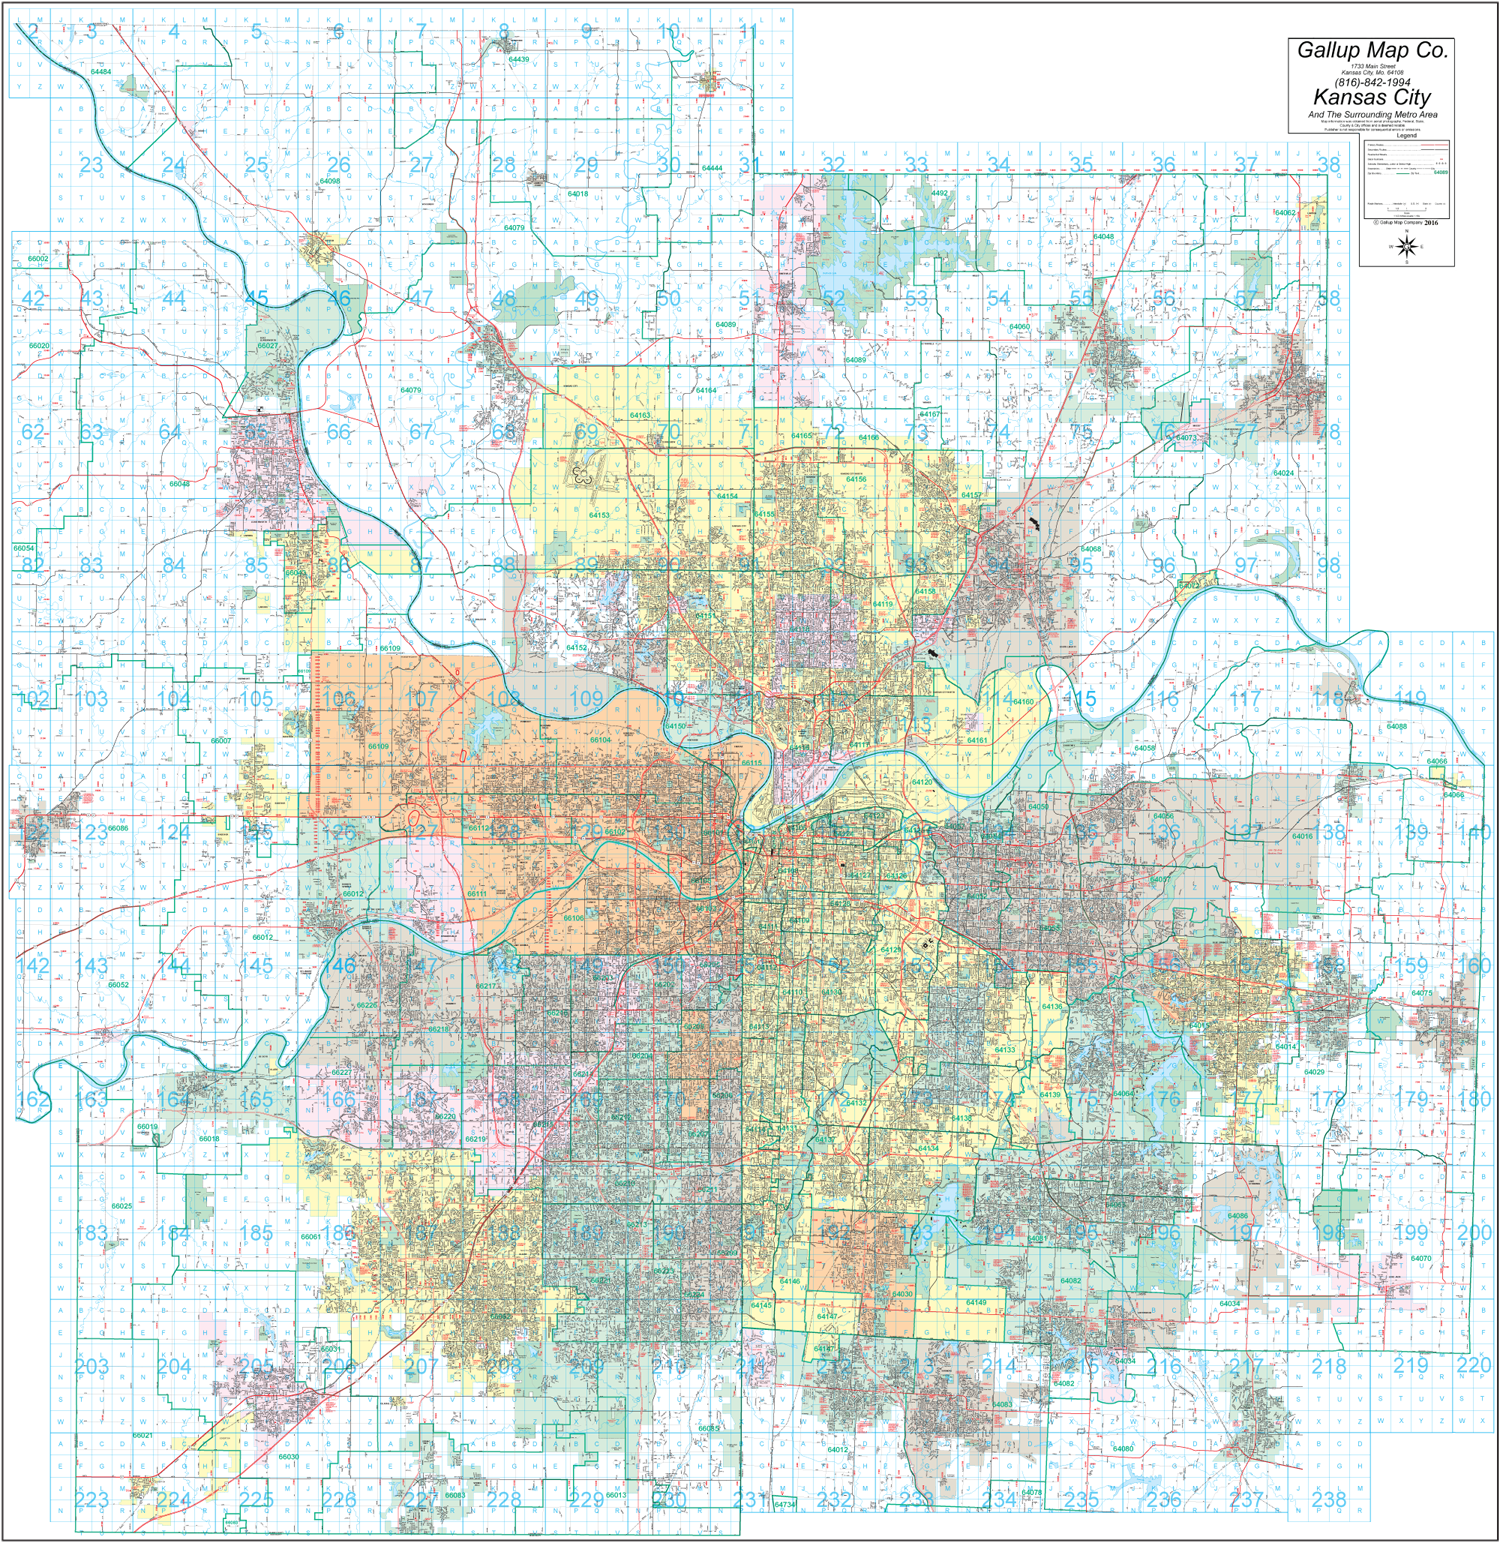 Kansas City Street and Zip Code Wall Map - Gallup Map on